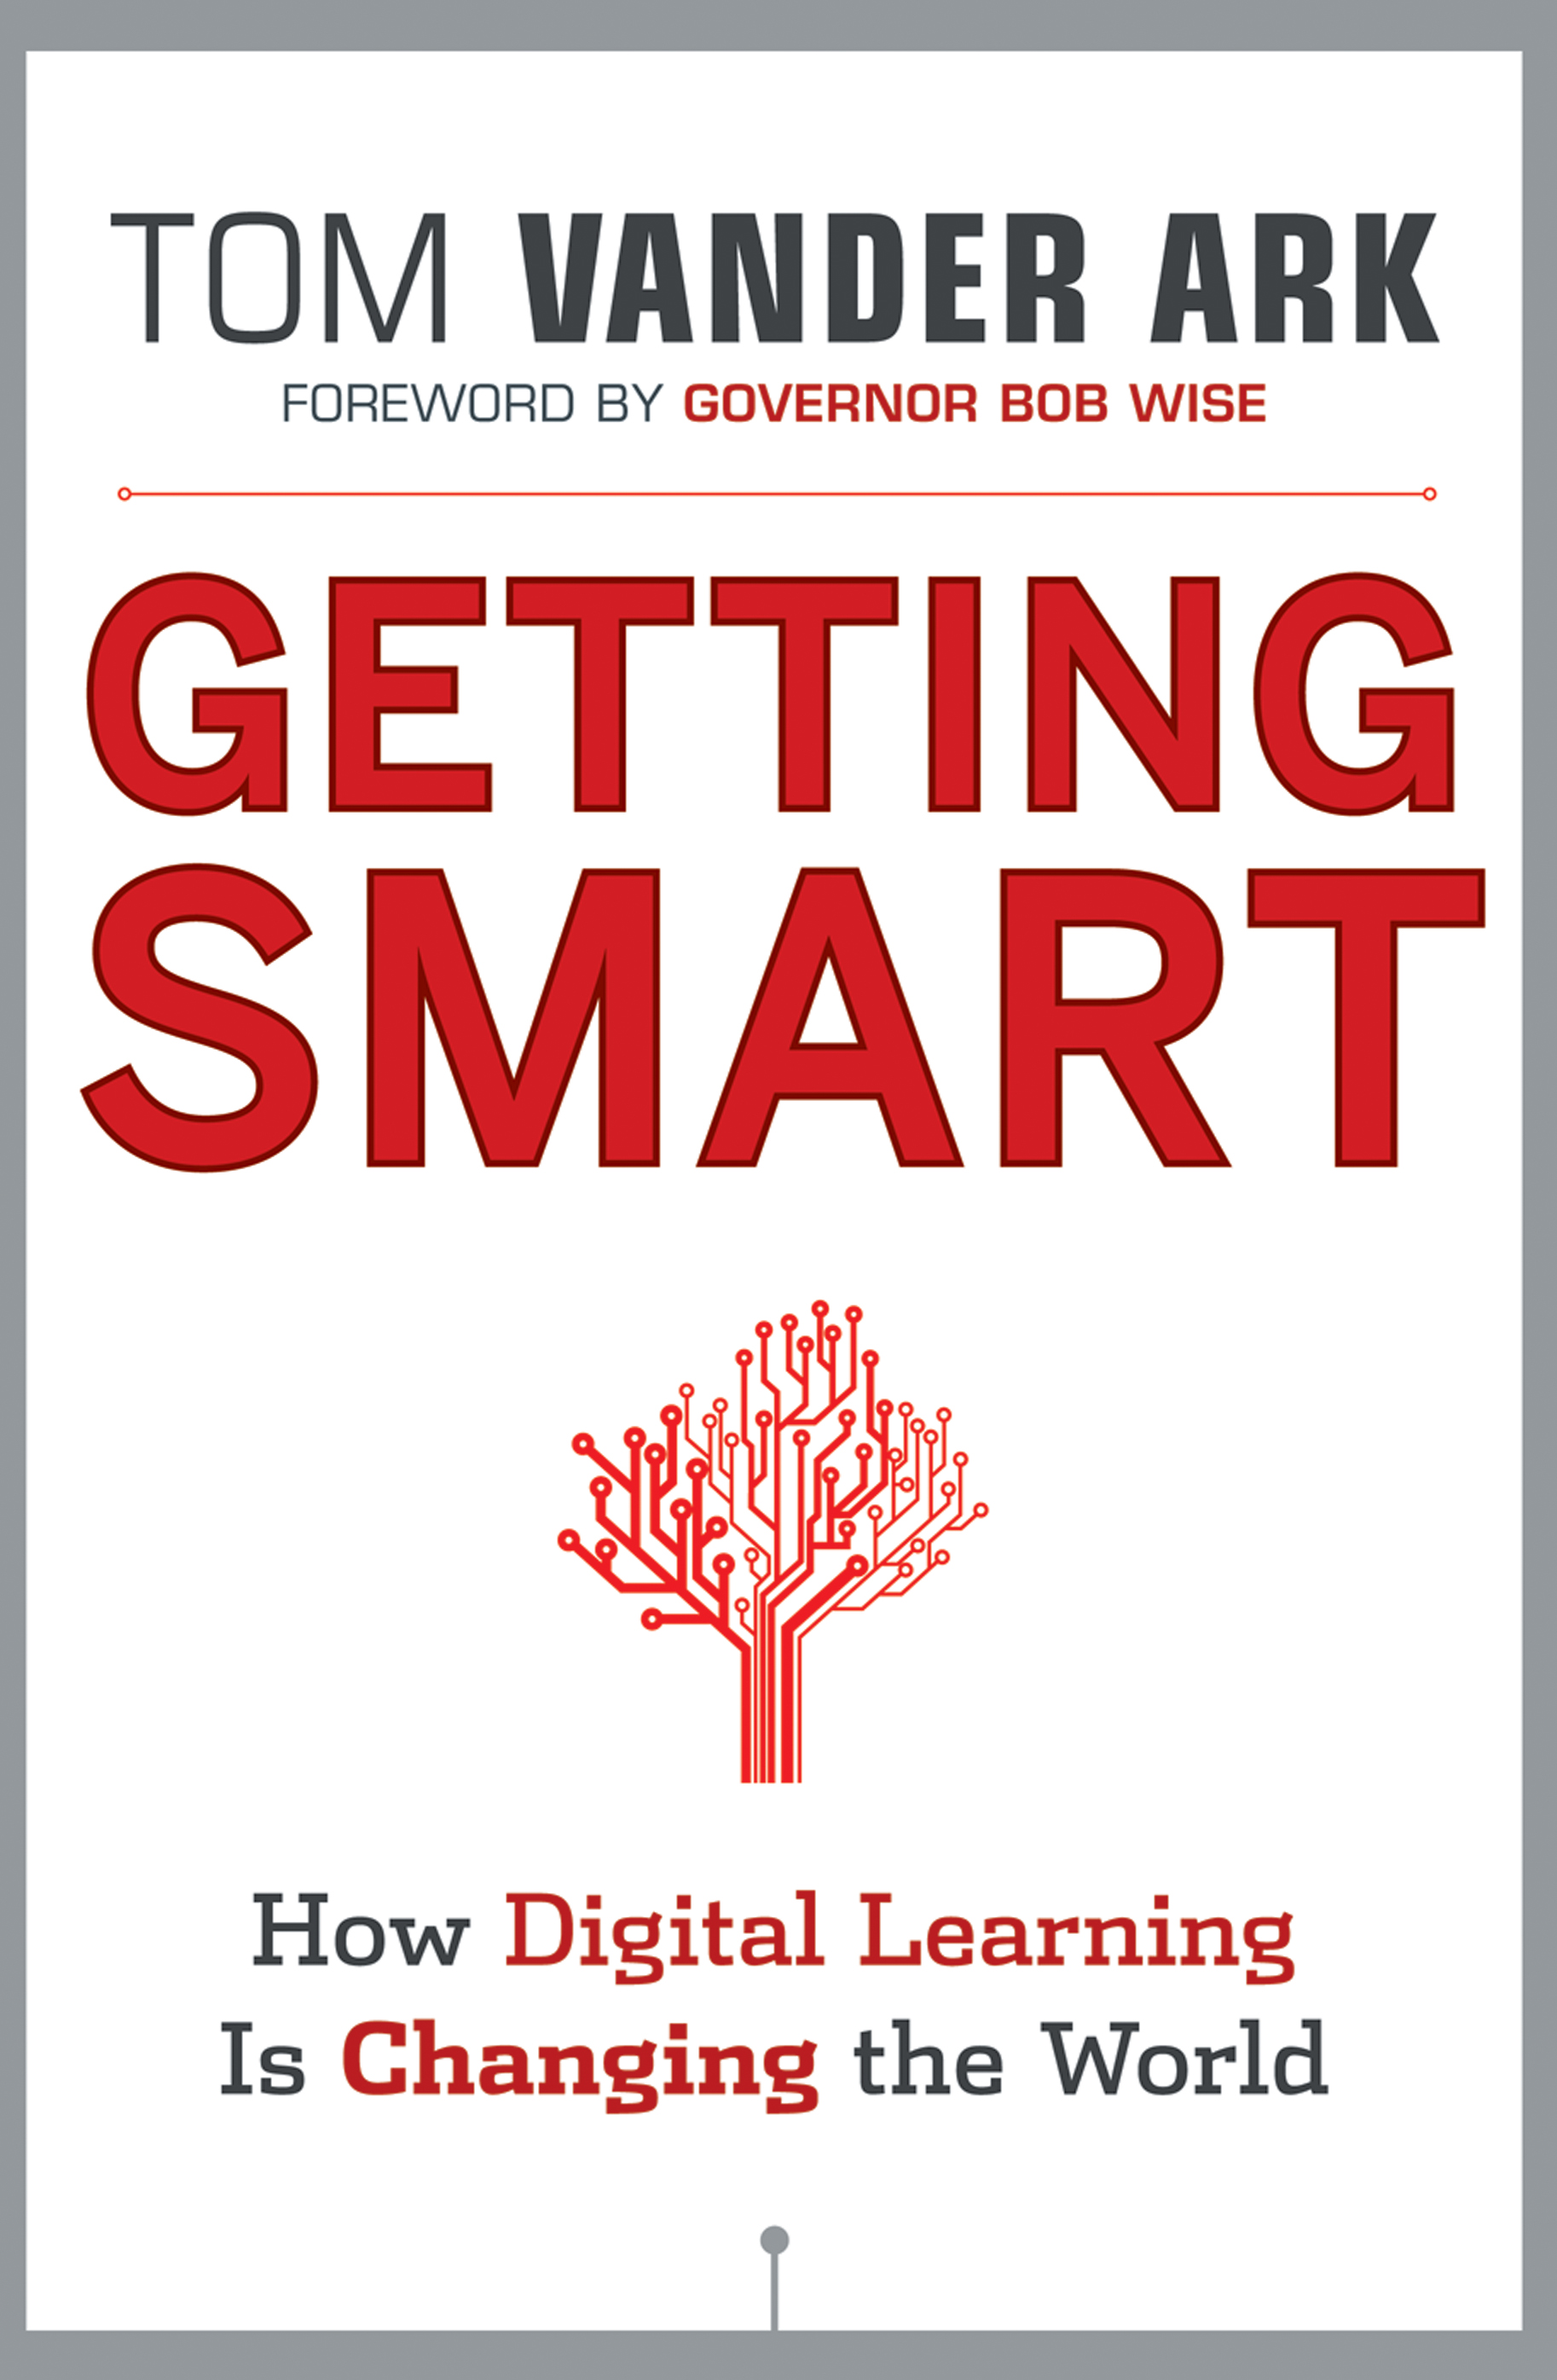 Bob Wise Getting Smart. How Digital Learning is Changing the World